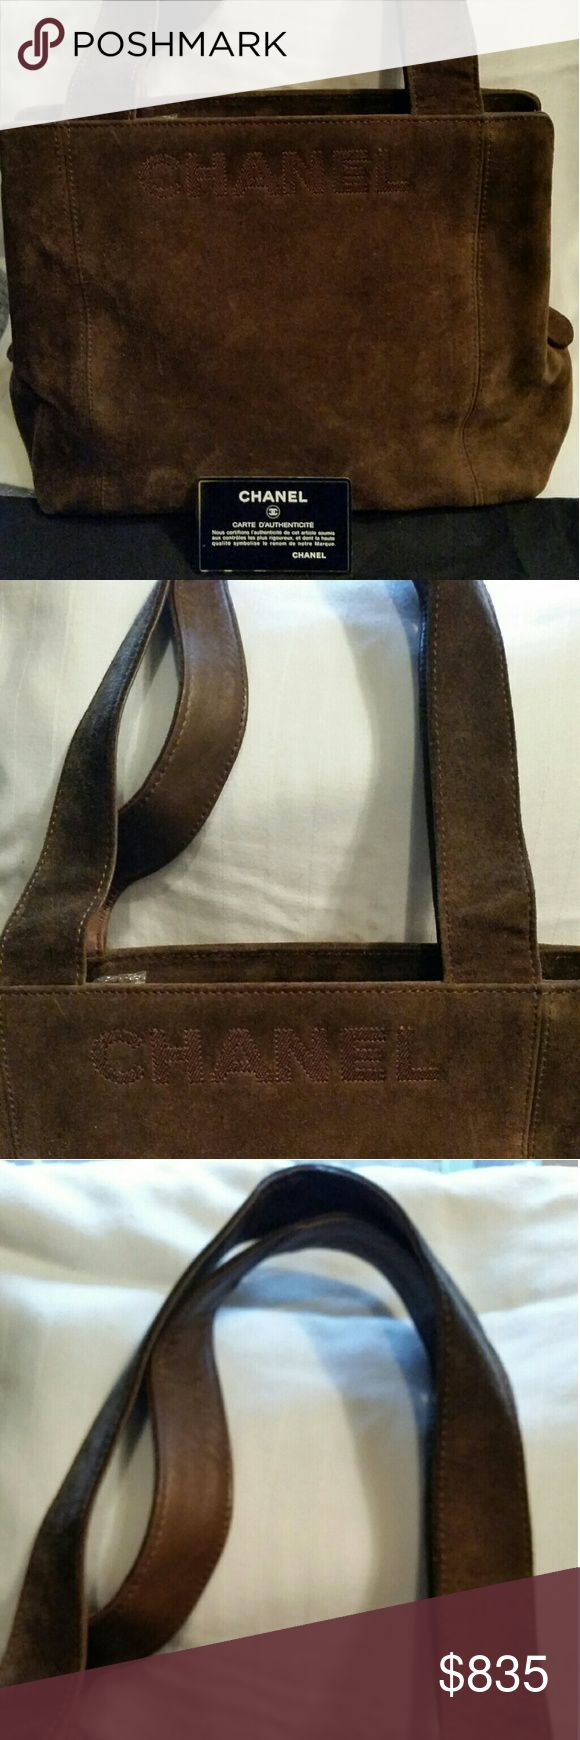 AUTHENTIC CHANEL CC SHOULDER BAG DARK BROWN SUEDE TOOK CARE OF THIS CHANEL BAG AUTHENTICITY GUARRNTEED   VERY GOOD CONDITION   COMPLETE WITH DUST COVER AND AUTHENTICITY CARD WHICH MATCHES  THE HOLOGRAM STICKER  NUMBER 4952197   W 11.4 X H 9.1 X D 3.9 INCHES  .SHOULDER DROP 9.1   COLOR . DARK BROWN / SUEDE  LEATHER .  INSIDE VERY GOOD  CONDITION. ALL POCKETS ARE VERY GOOD   EXTERIOR  SIGN OF OVERALL NORMAL USED . NO RIP OR TEARS   COMES WITH DUST BAG . AUTHENTICITY SEAL ..AUTHENTICITY CARD…